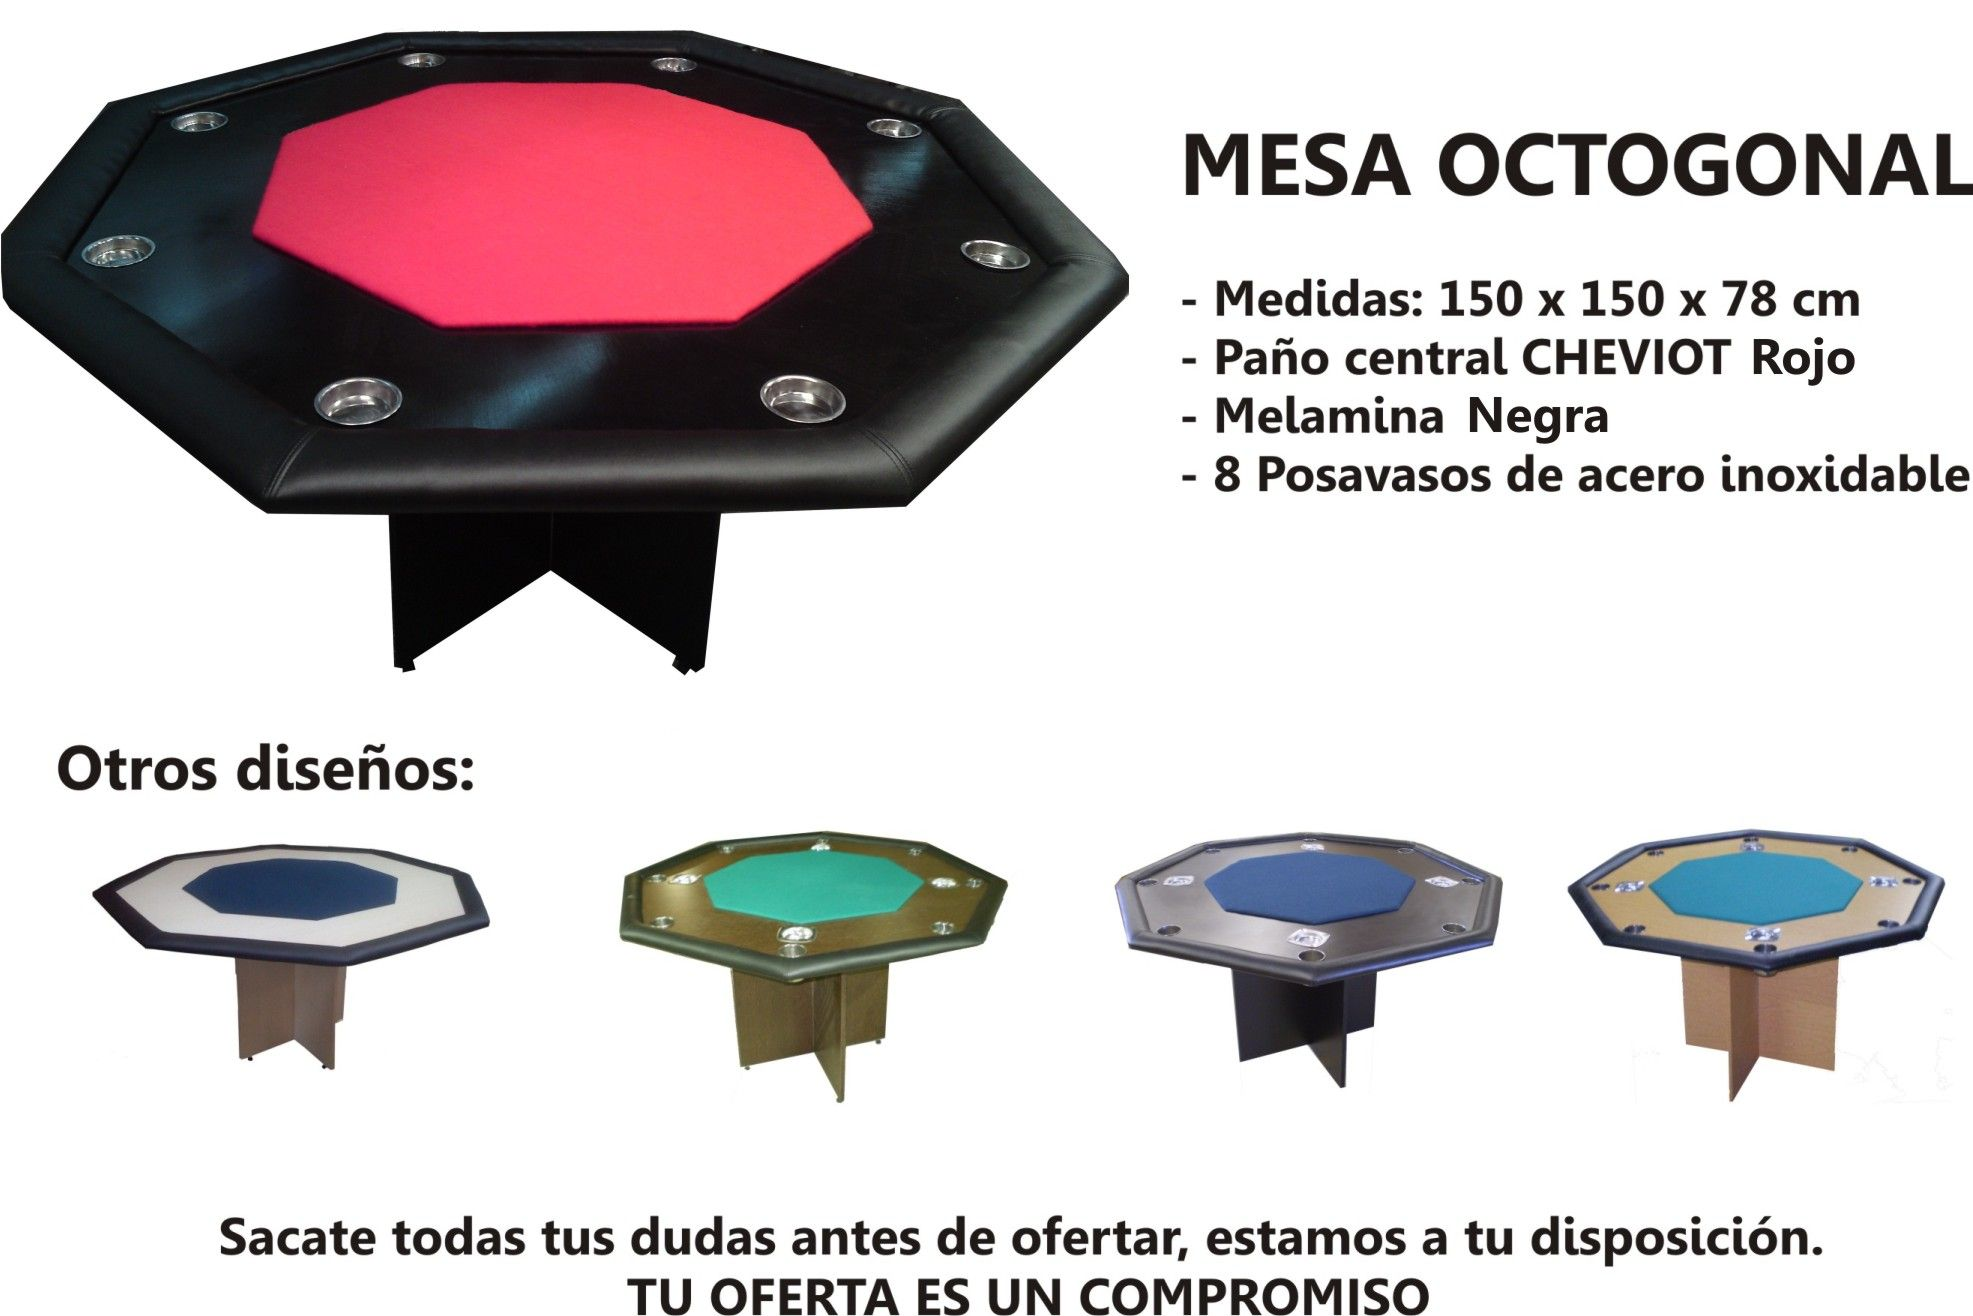 Juegos Mesas Mesa De Poker Octogonal Diy Poker Table Table Games Y Table